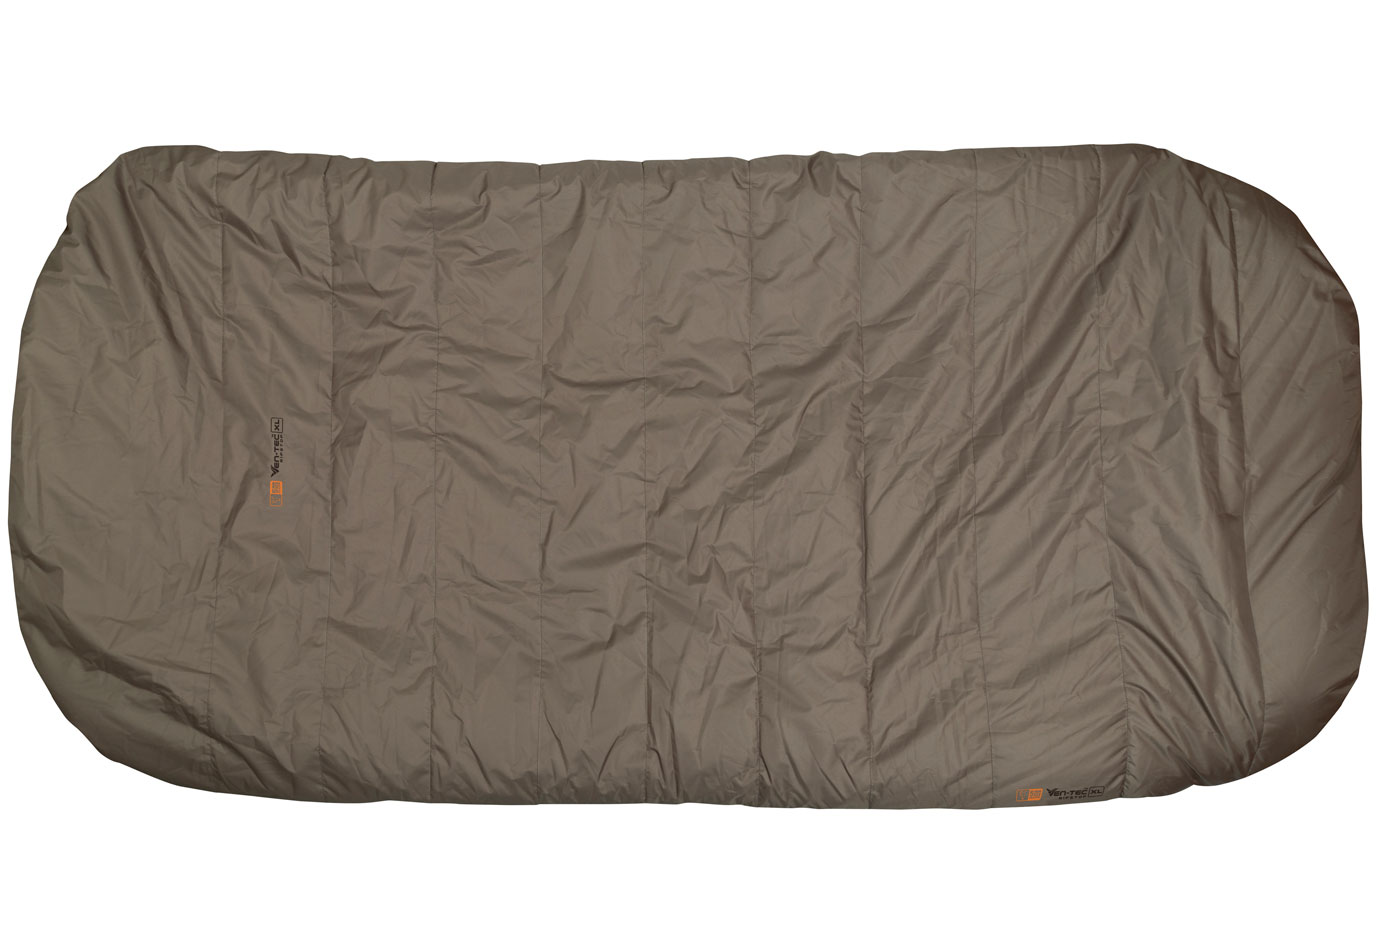 ventect-5-season-sleeping-bag_overhead-xlgif